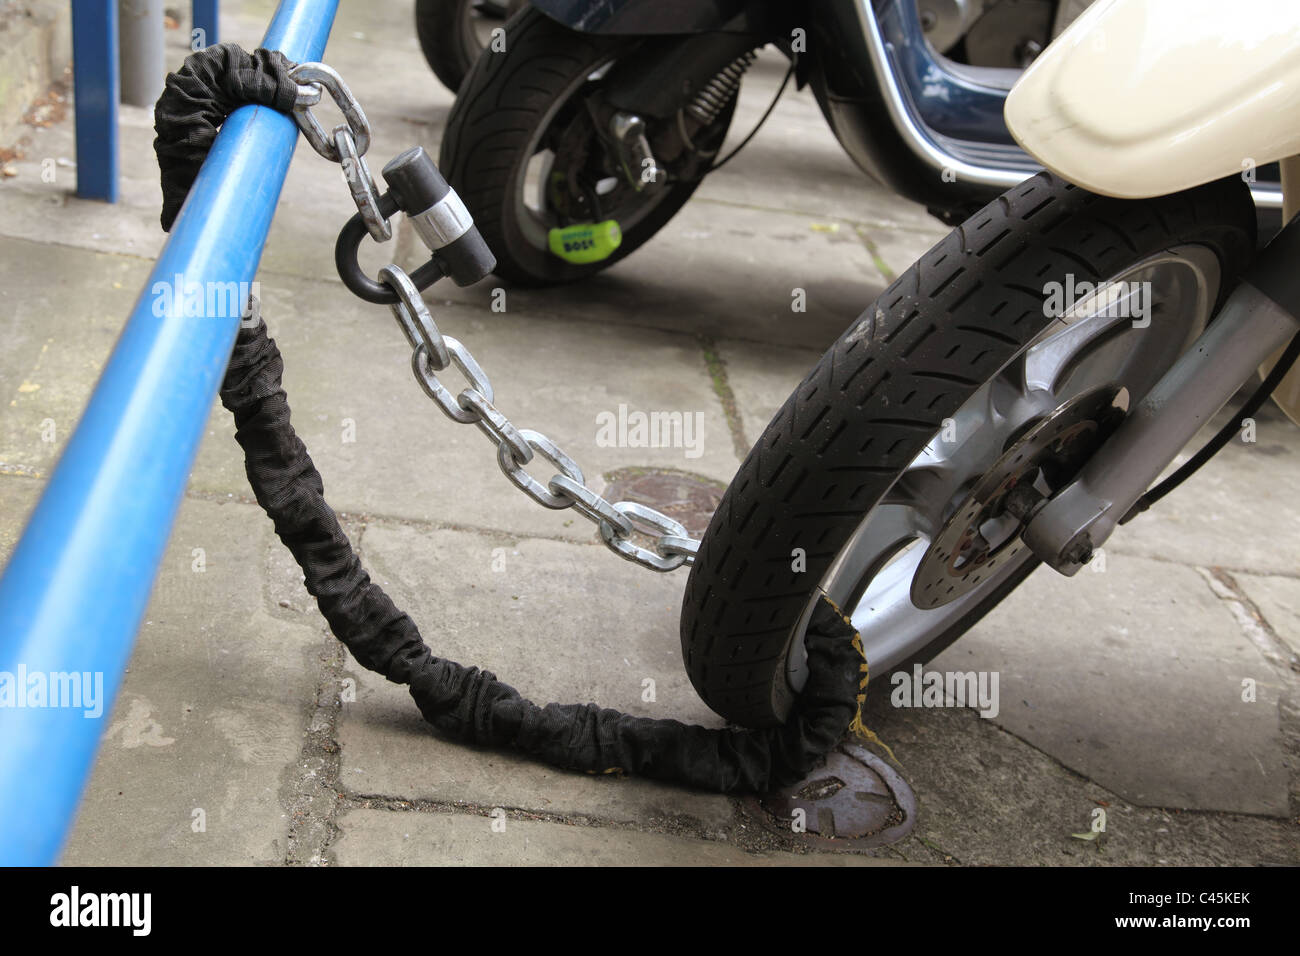 A parked scooter securely chained on a U.K. street. Stock Photo